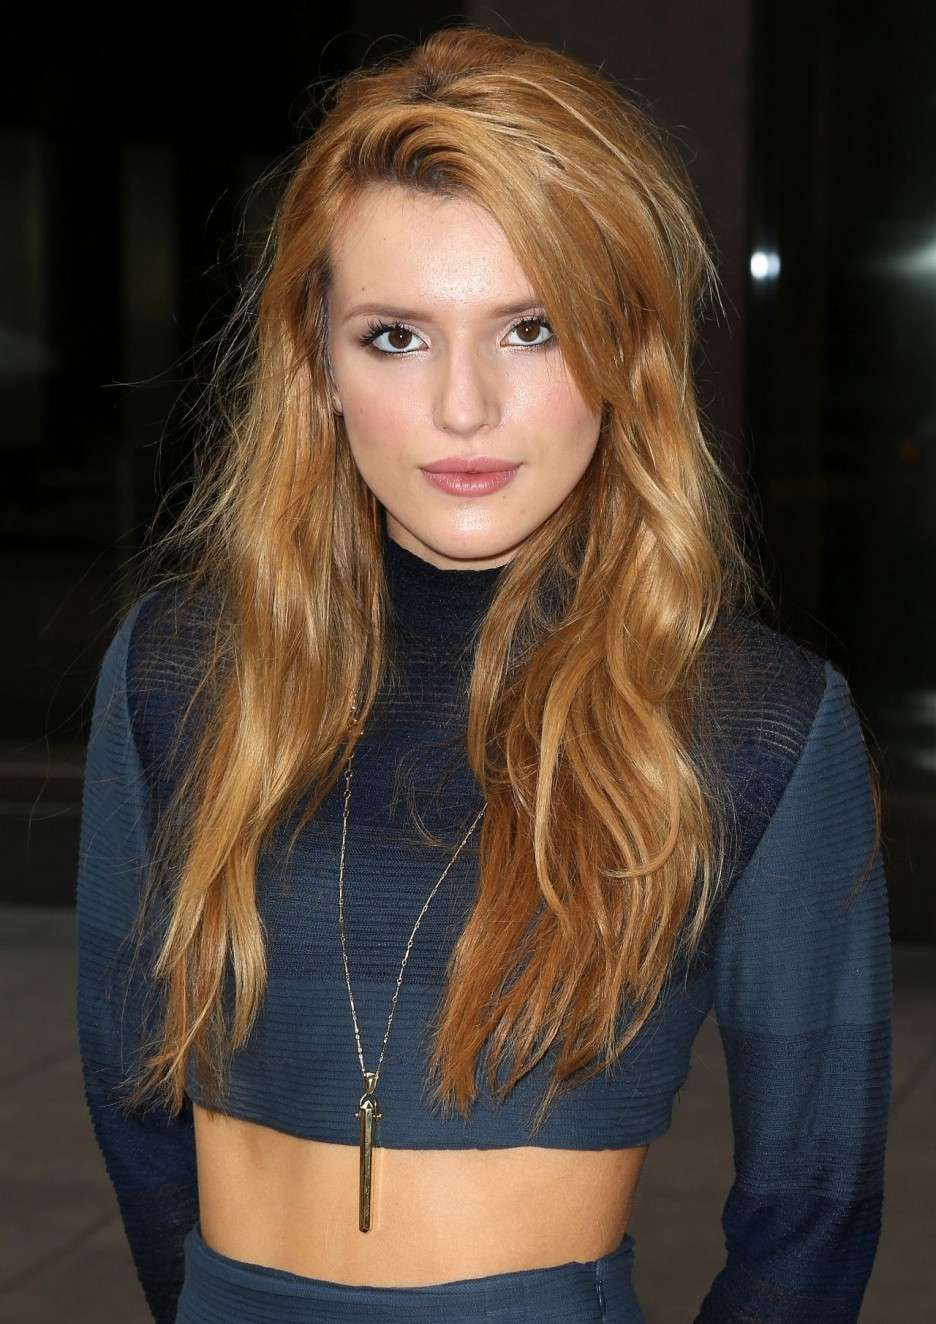 Crop top di Bella Thorne